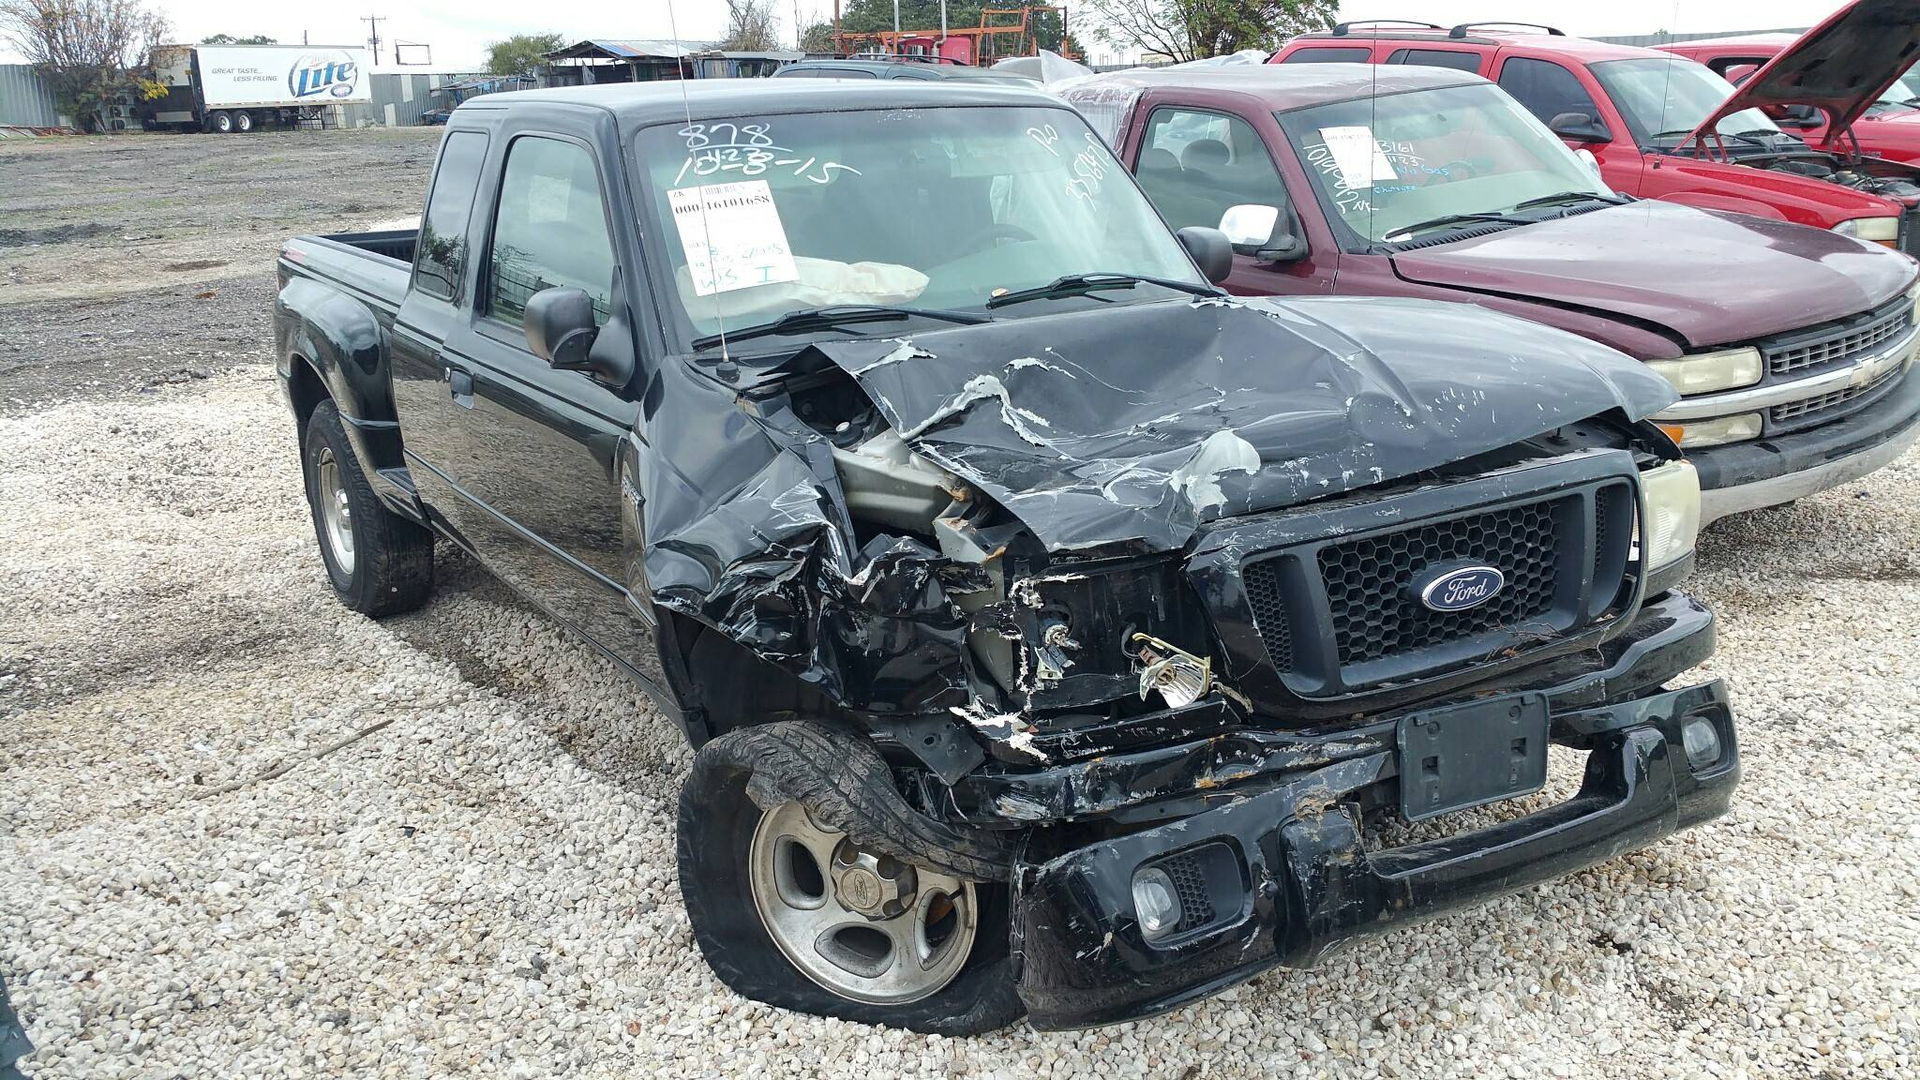 Cash for cars and trucks, Junk Cars Salvage Cars- San Antonio, Texas